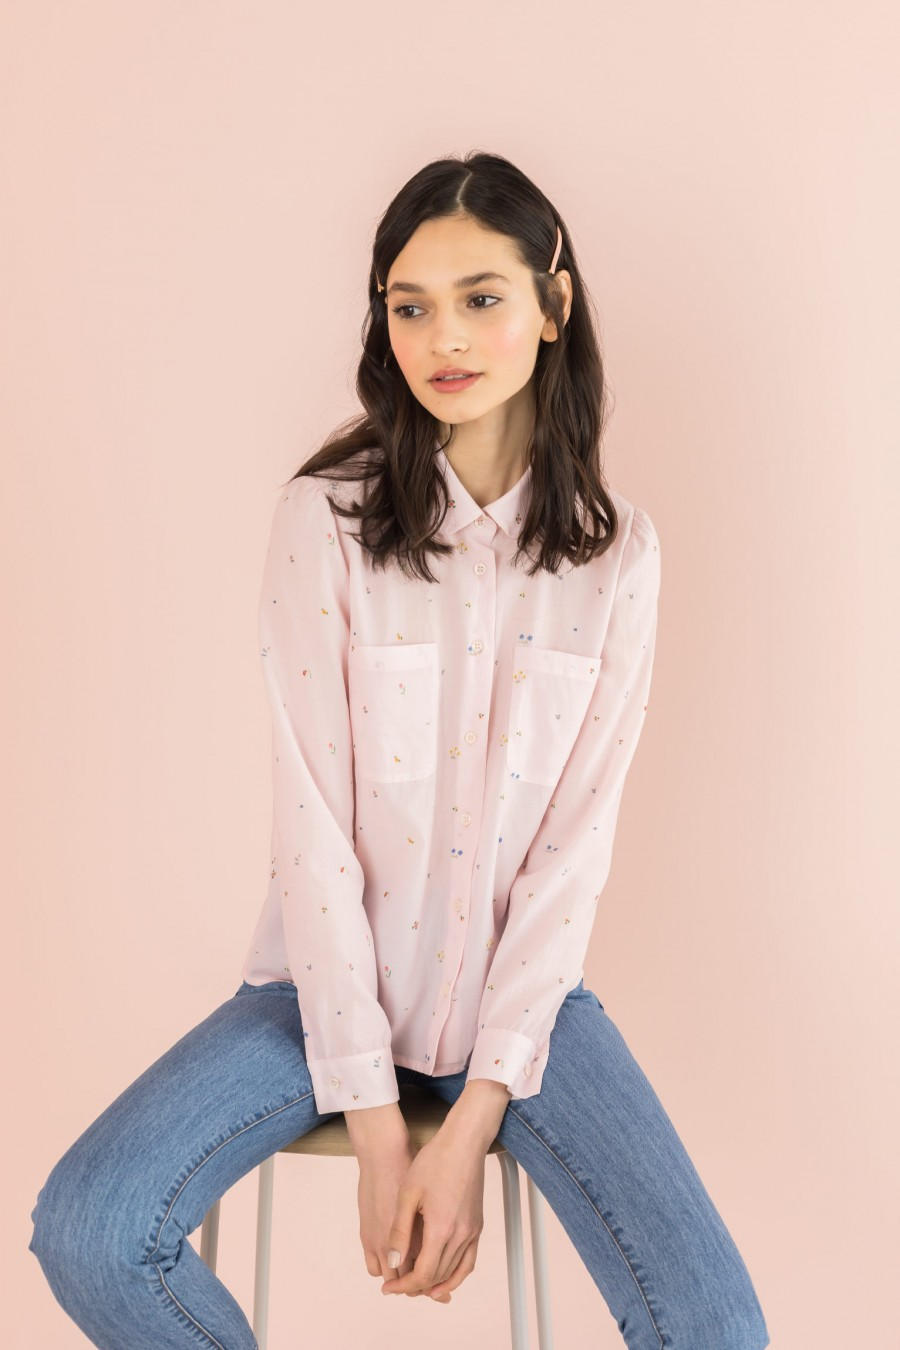 shirt with pockets and rounded collar